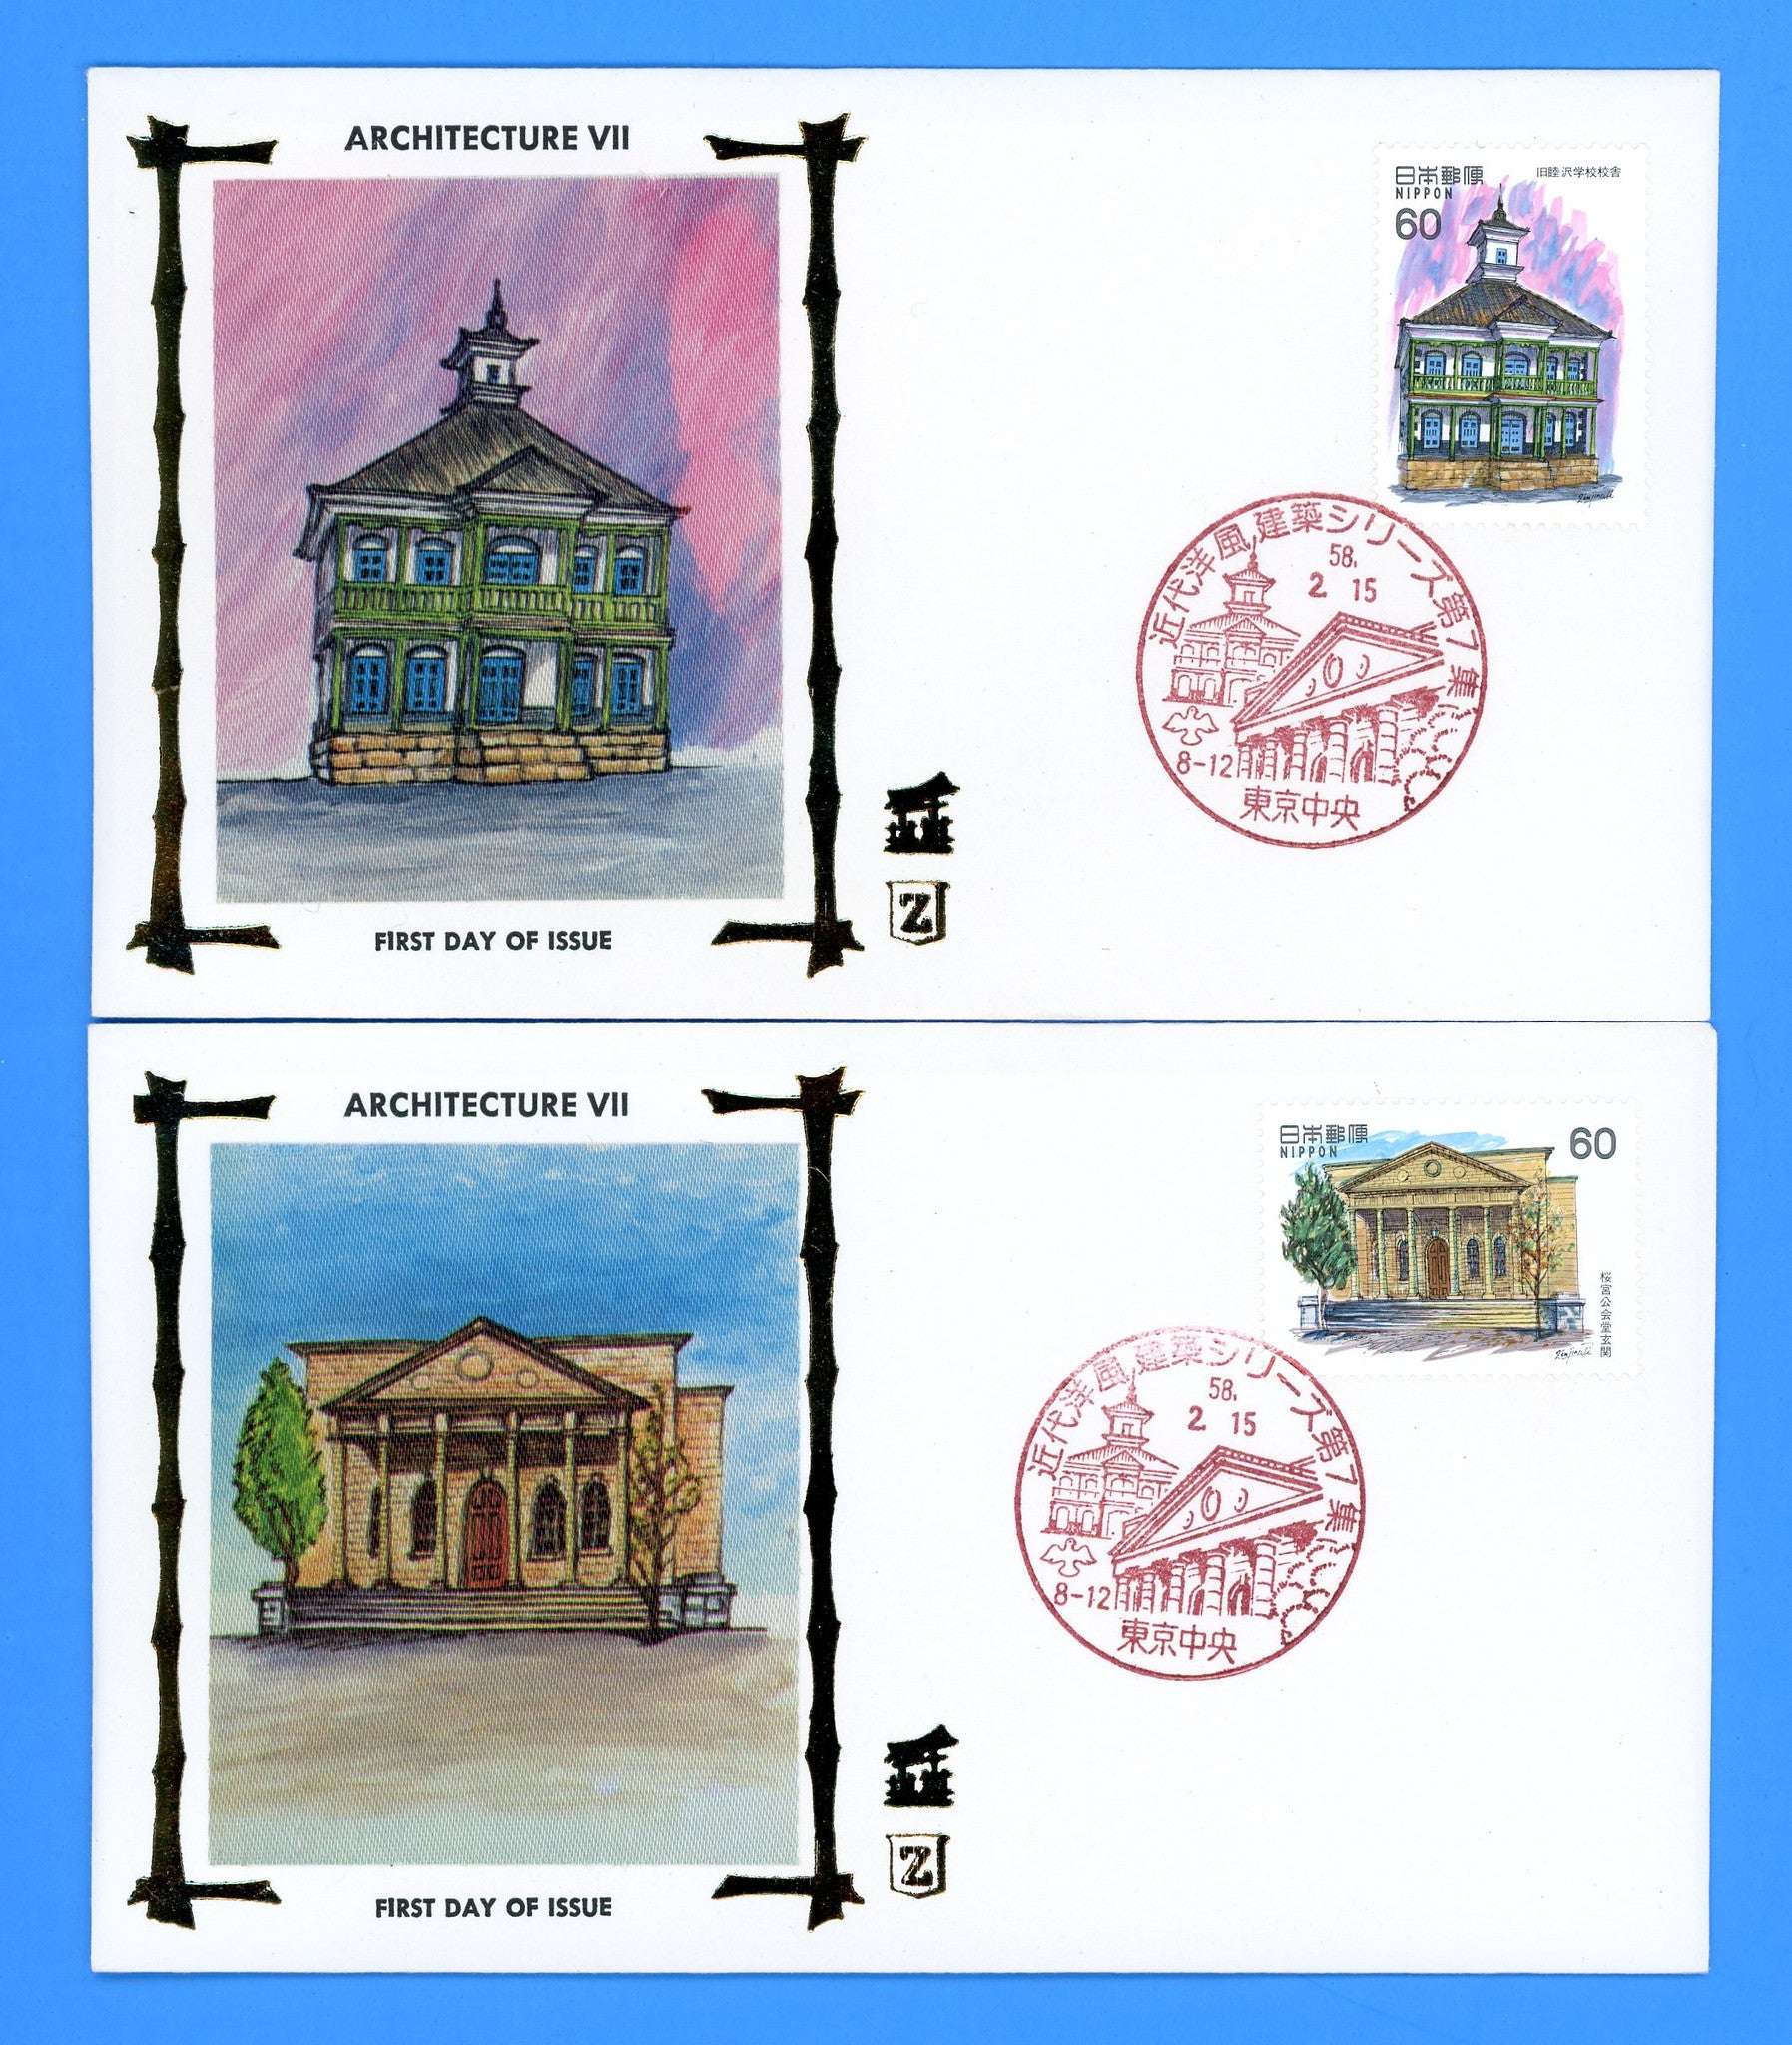 Japan - Scott 1476-77 Architecture Series VII Set of Two First Day Covers by Z Silks